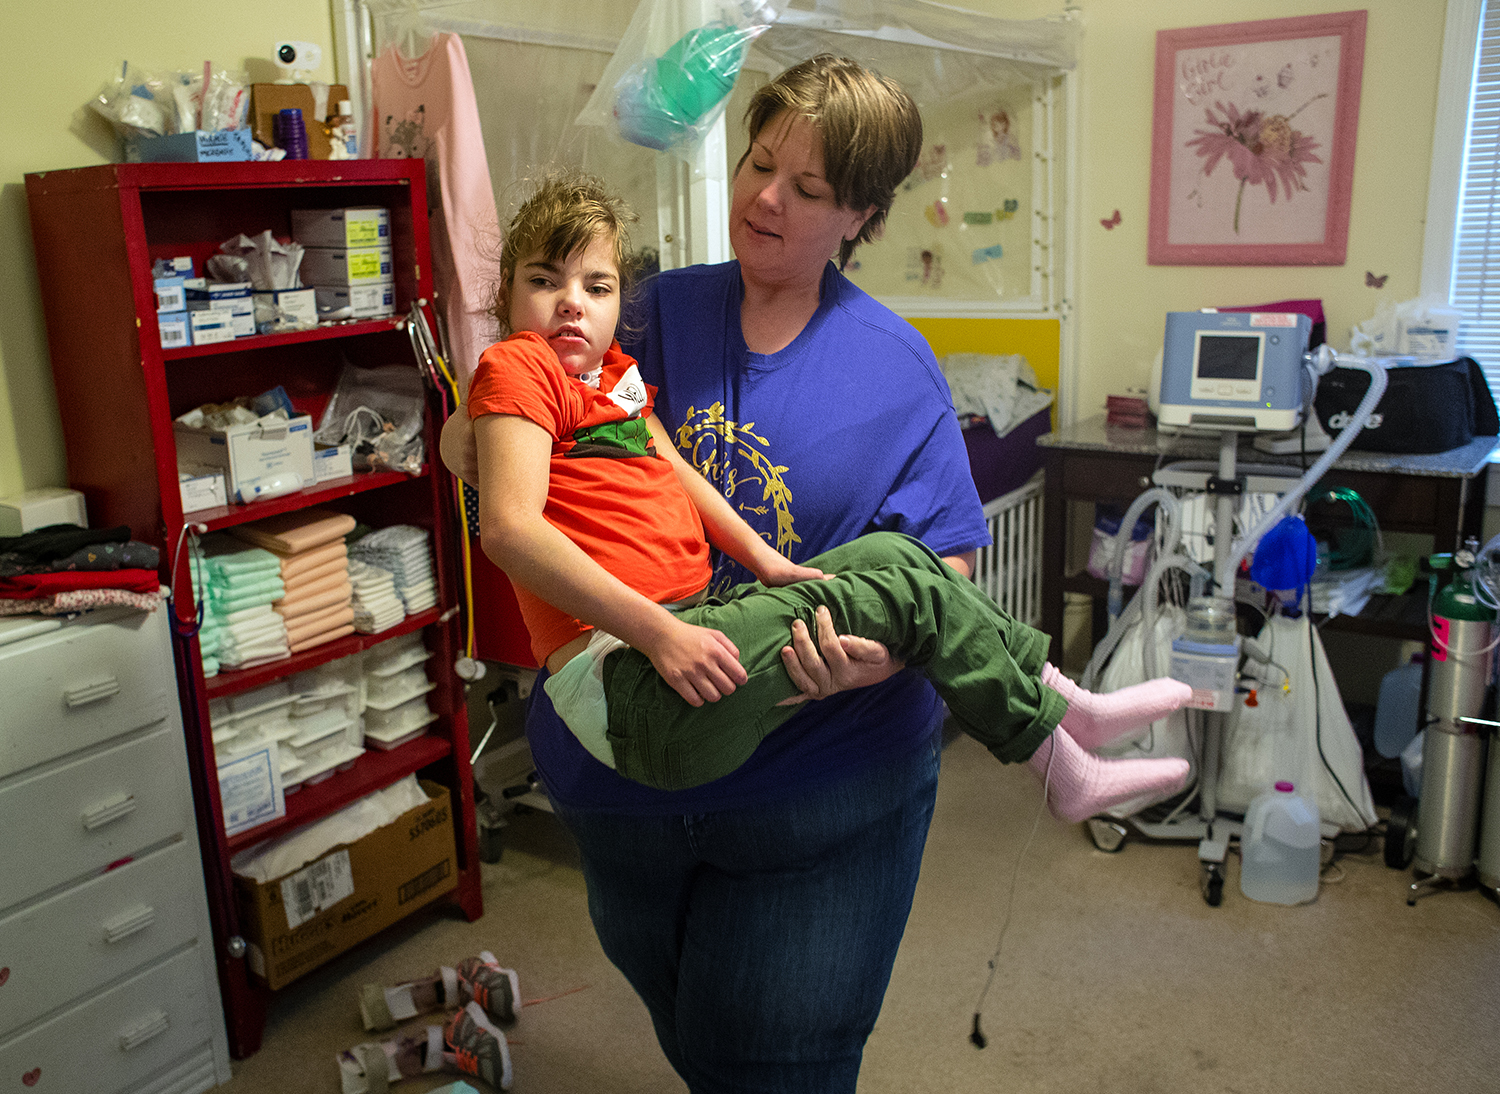 Rebekah Strate carries her 9-year-old daughter McKenzie to her wheelchair in her Murrayville home Friday, Nov. 17, 2017. Strate said she is worried that she will lose her children's current durable medical equipment provider, Memorial Home Services, if a company hired to reboot Illinois' Medicaid managed-care program makes significant cuts in payments for medical equipment. Strate is raising two children with complex medical needs who use equipment to keep them breathing. [Ted Schurter/The State Journal-Register]